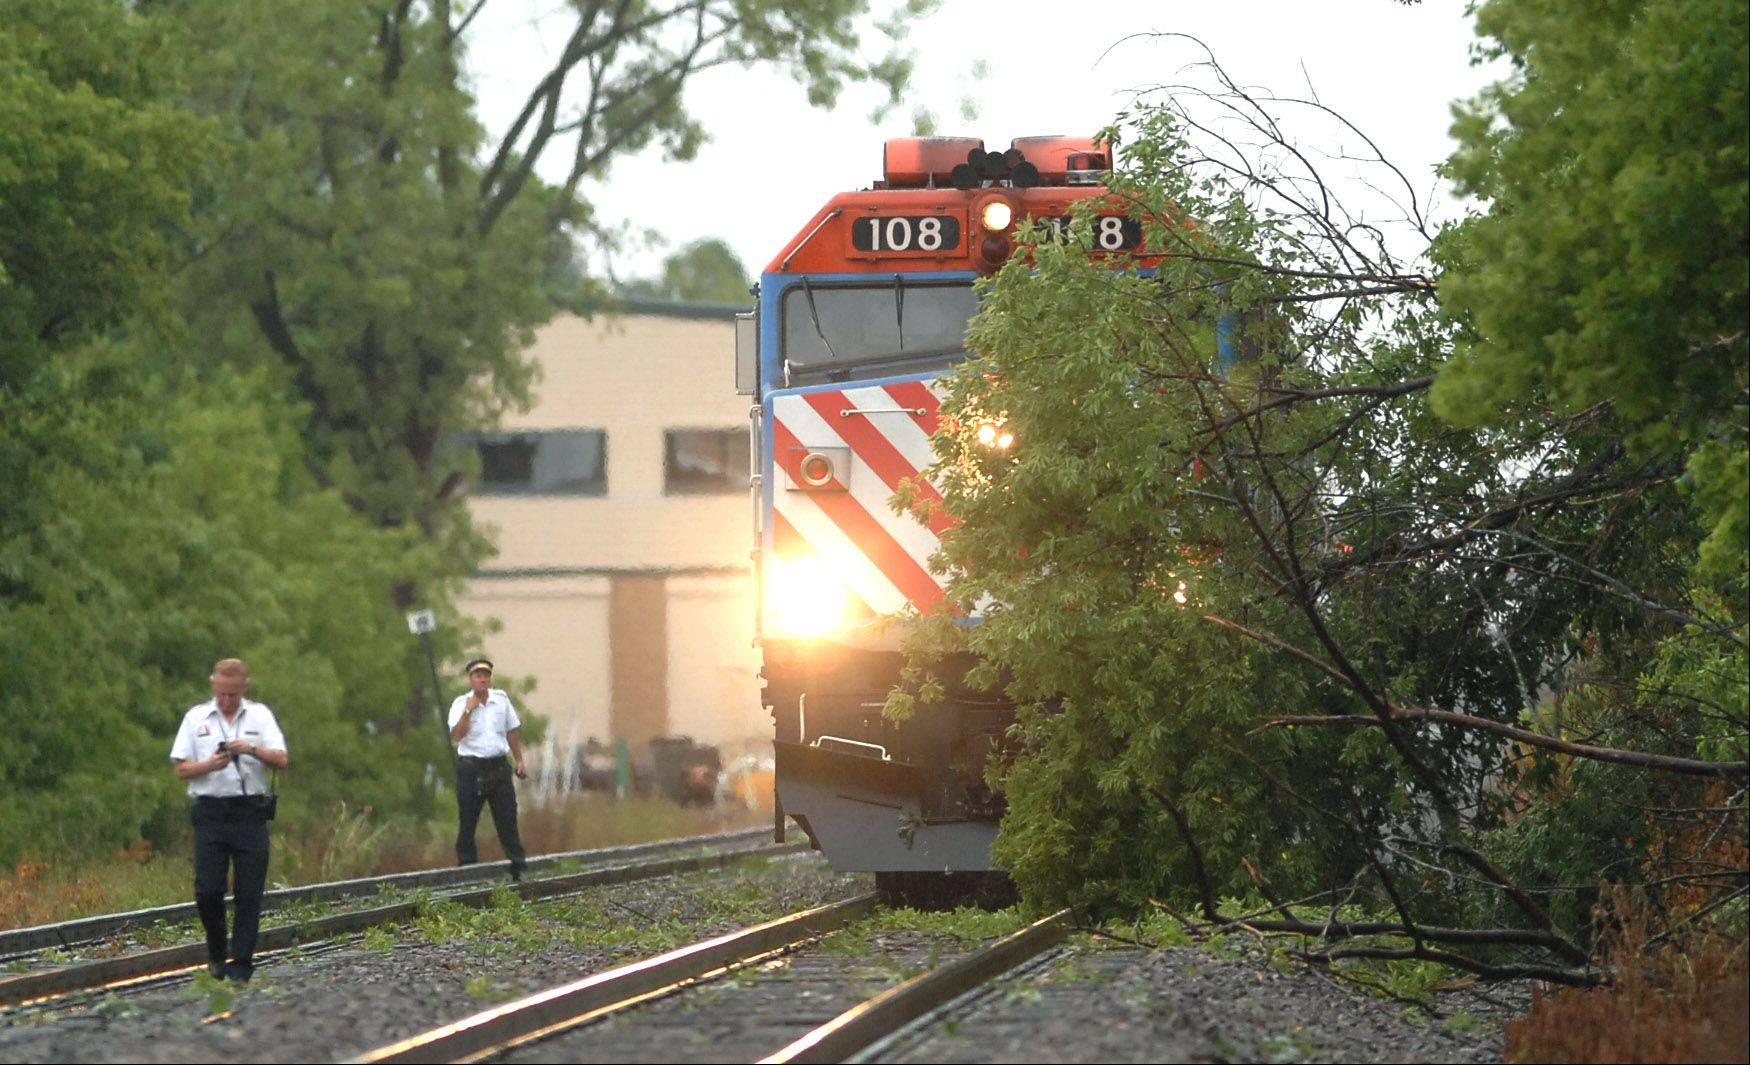 A Metra train is stopped in its tracks near Lake Street in Grayslake as a fallen tree blocks its path following Monday morning's storm.